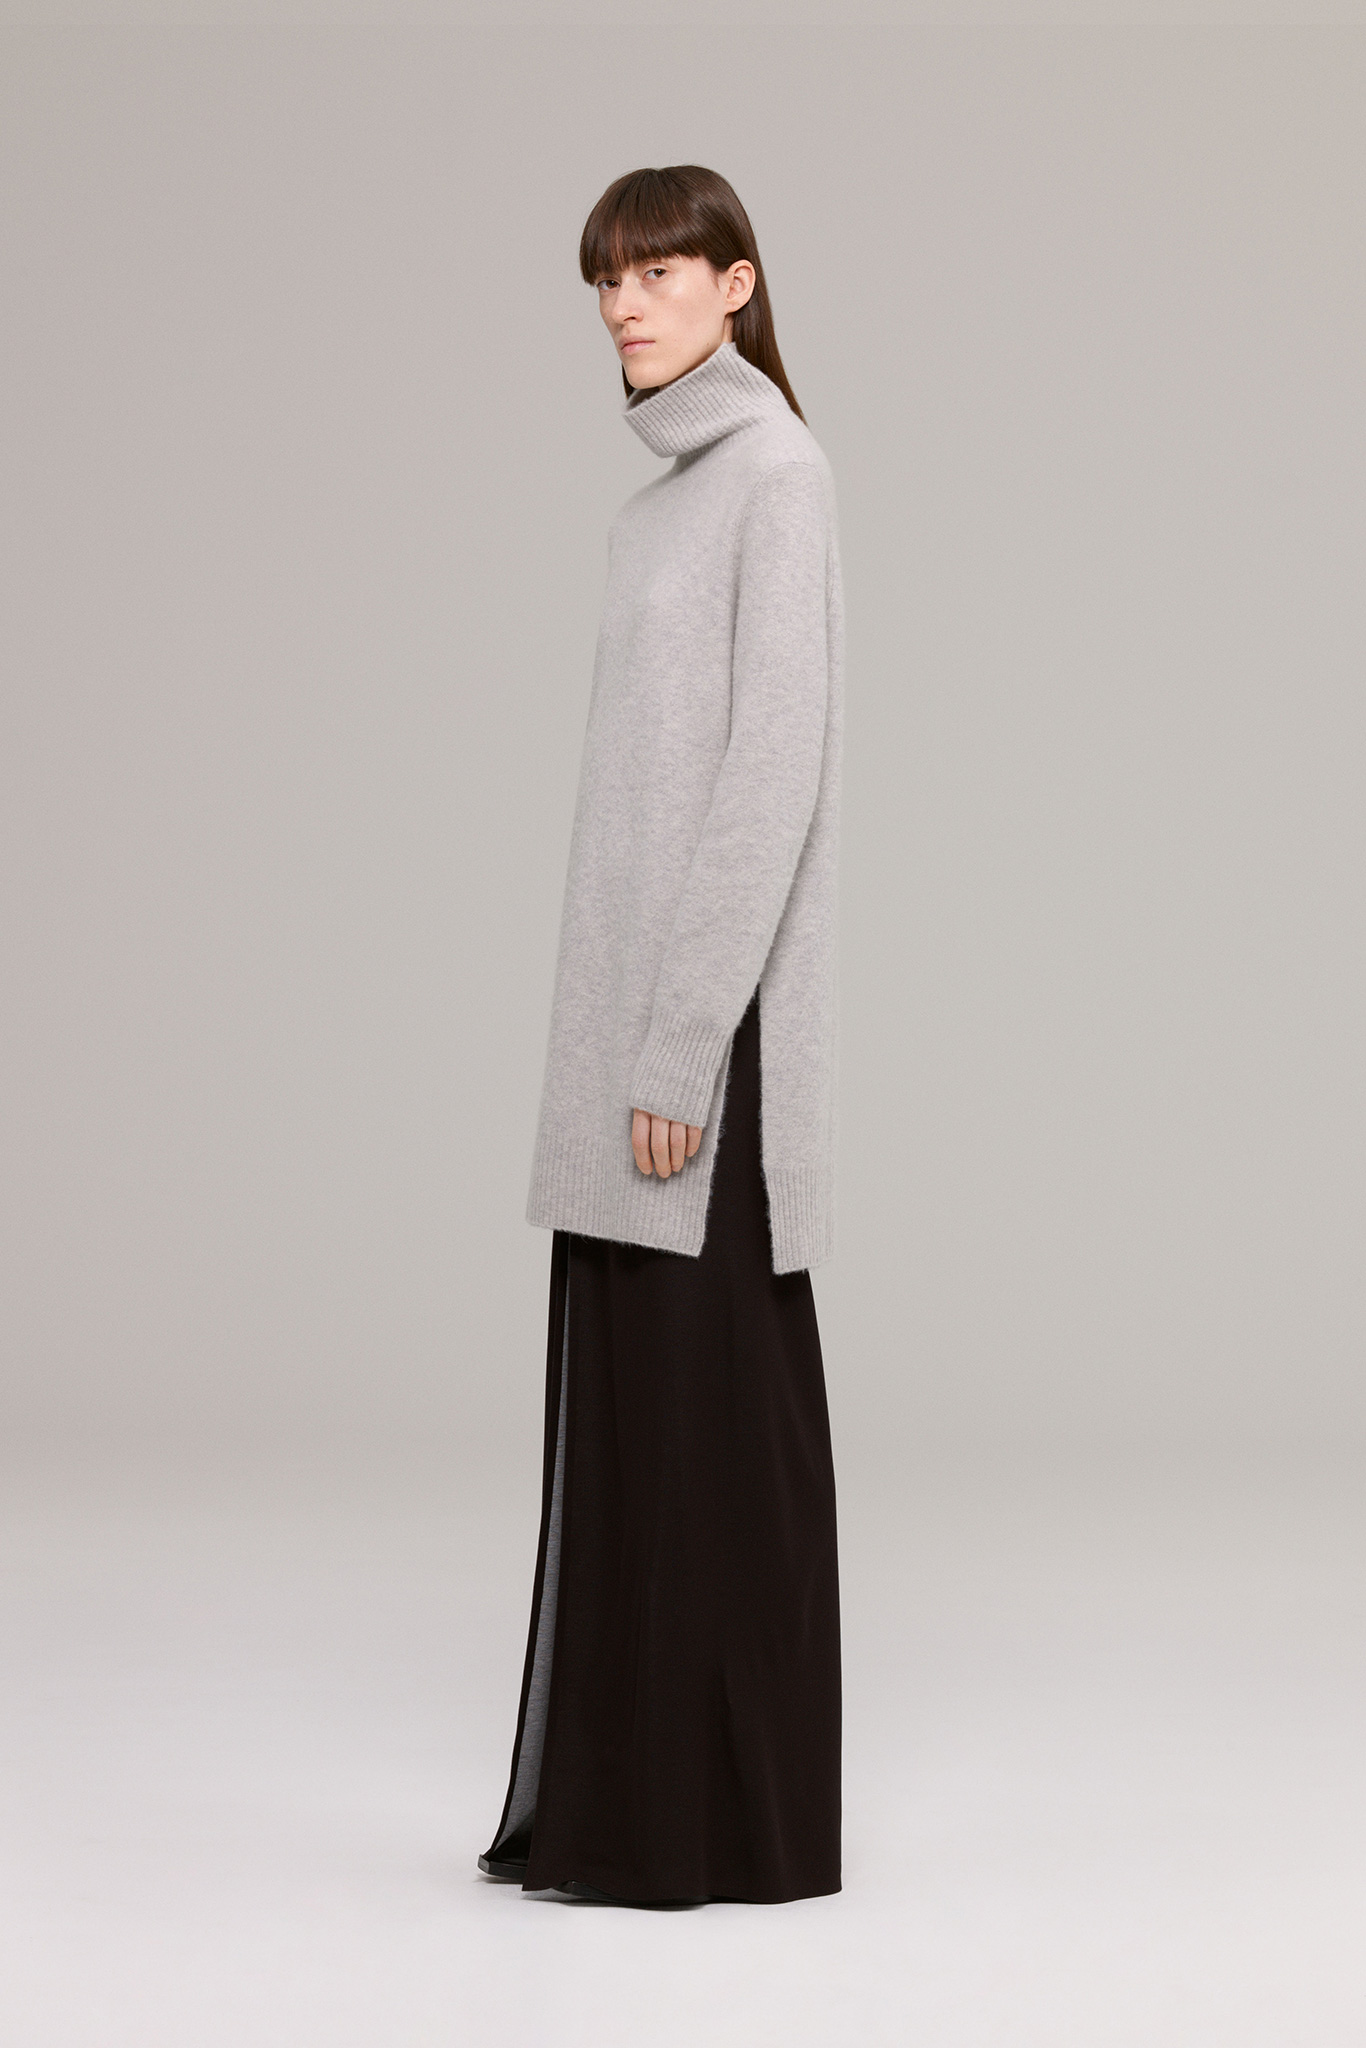 cos-fall-2015-collection-womens-mens-12